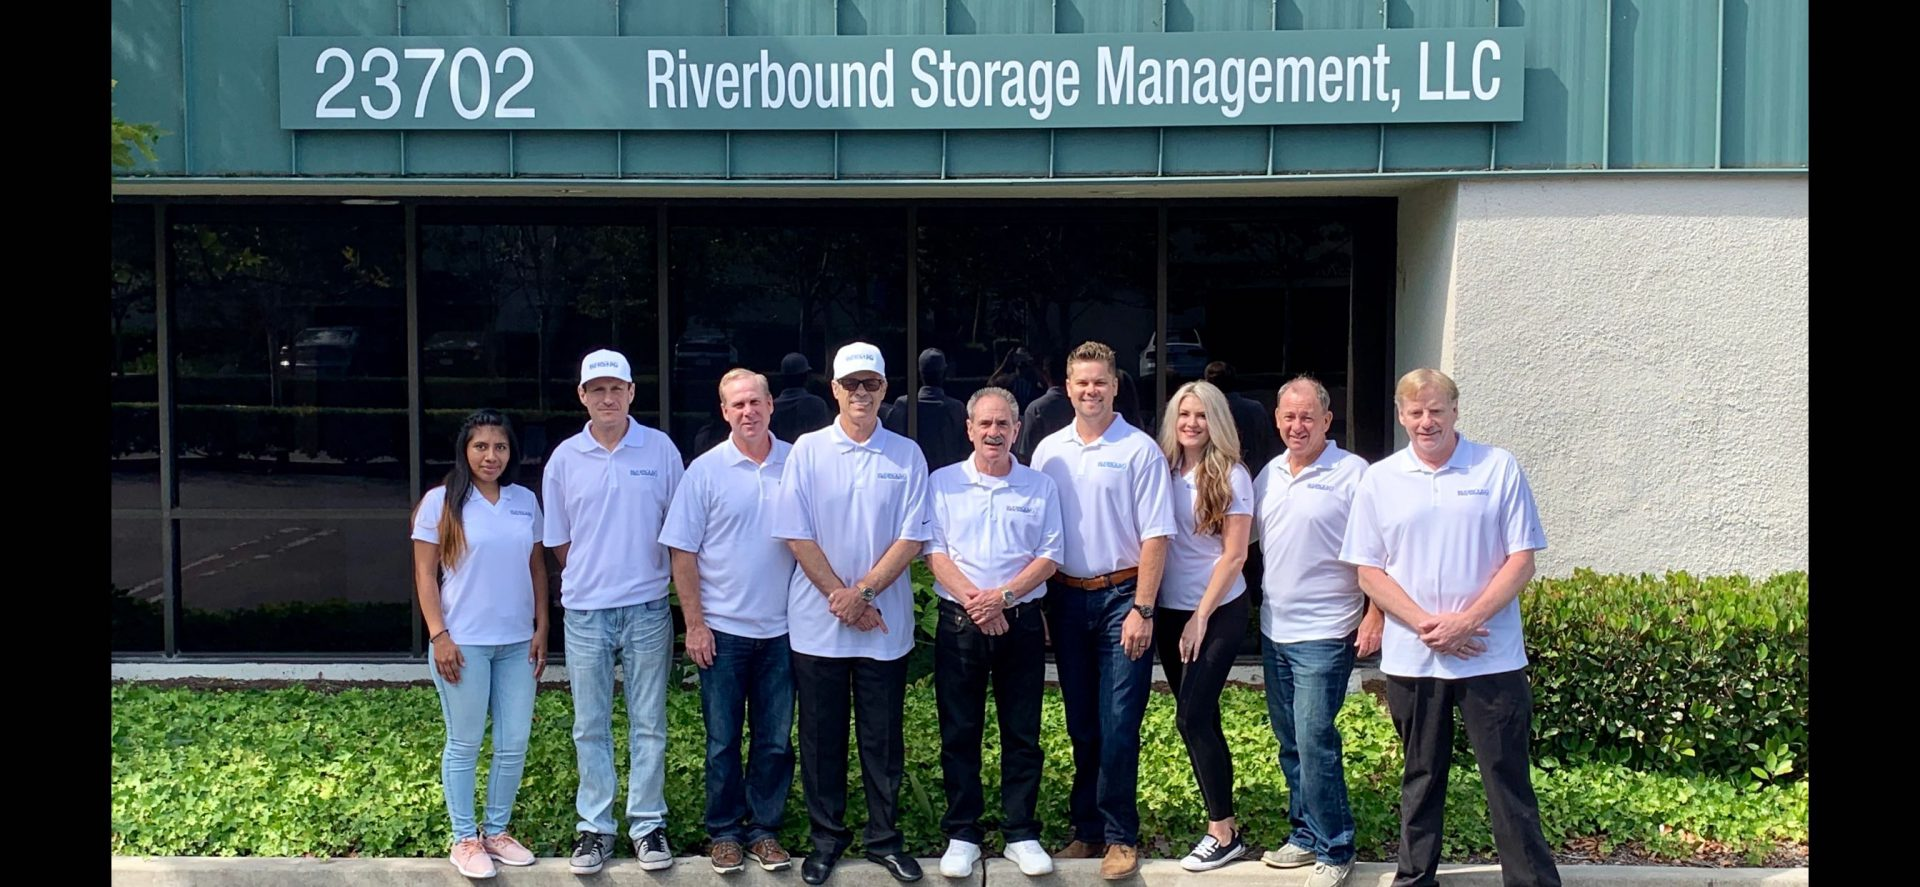 Staff at Riverbound